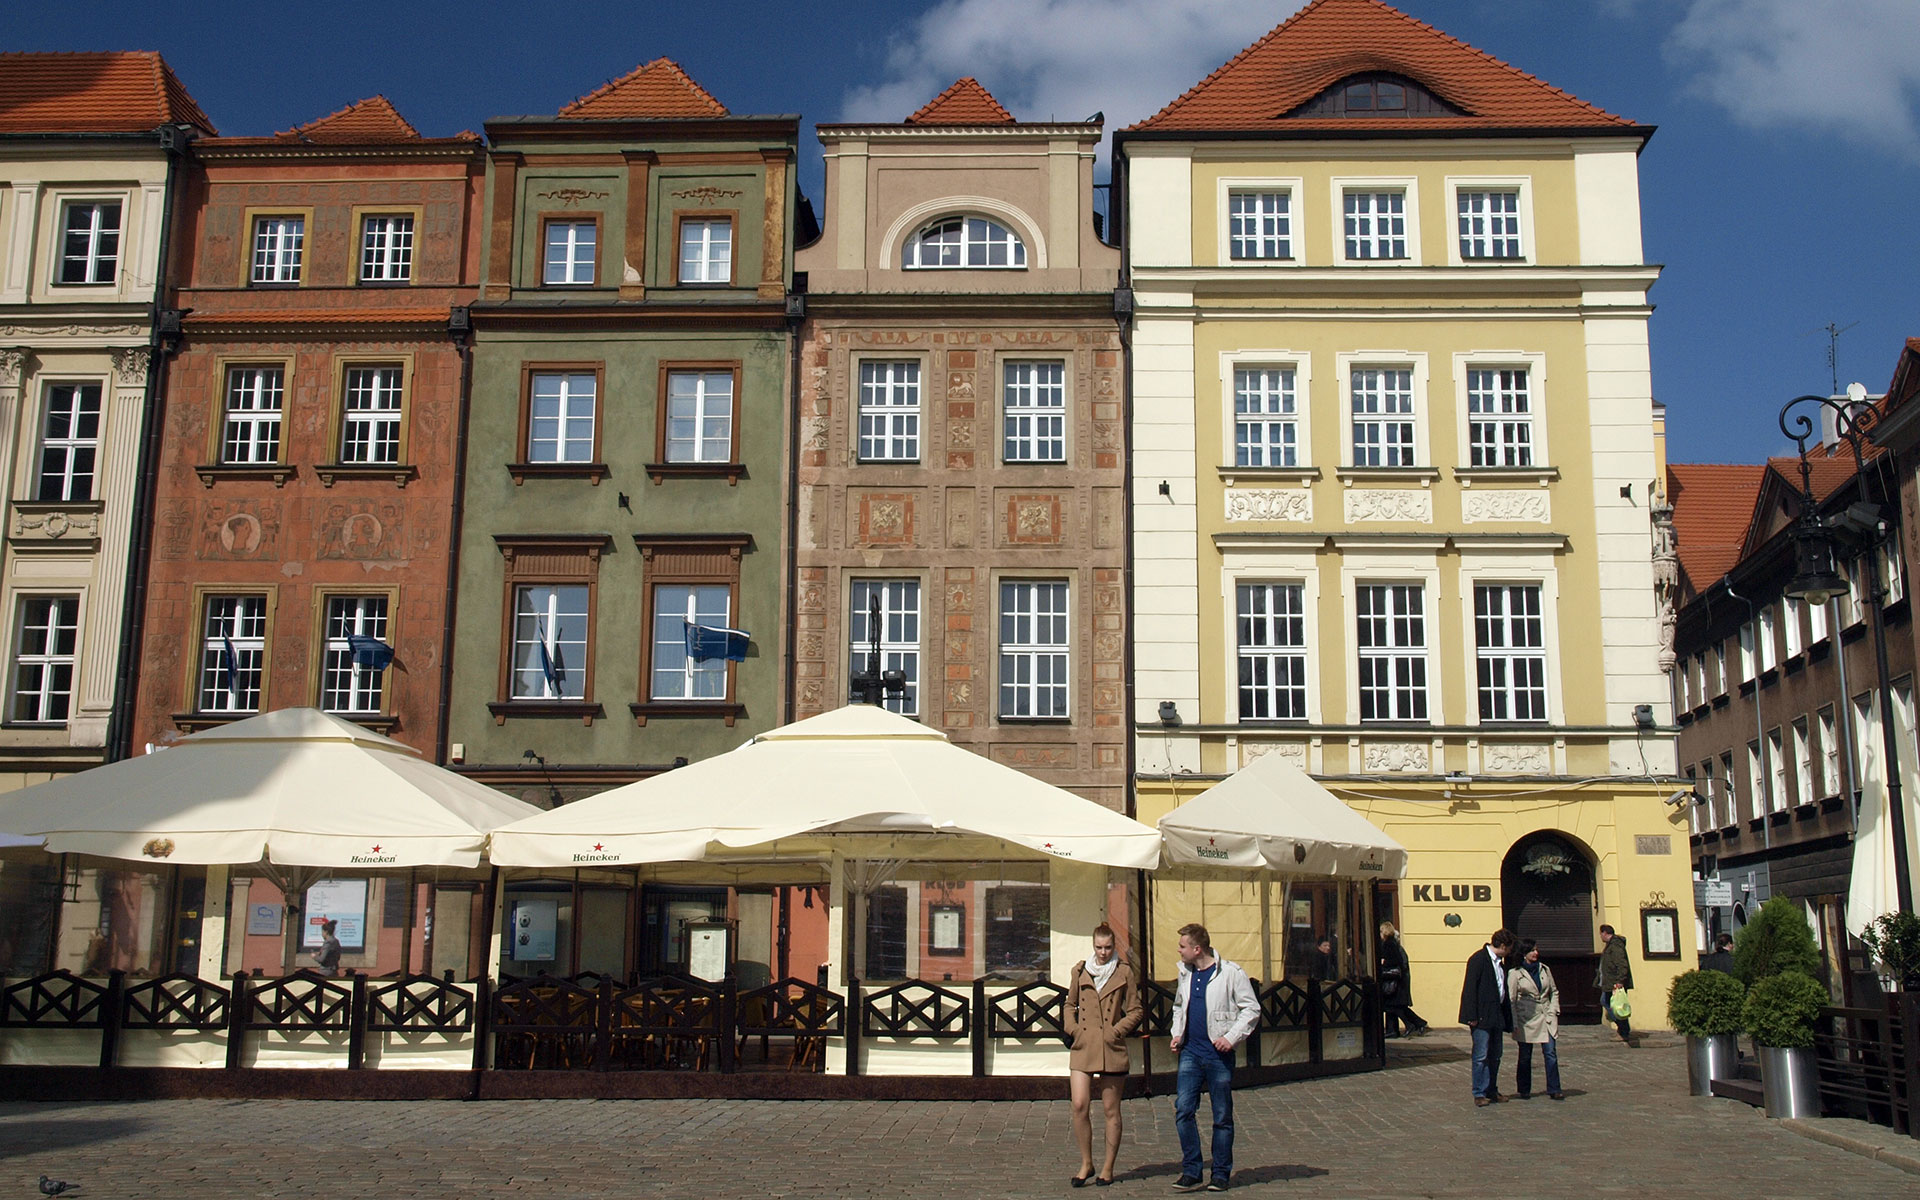 Colourful houses in Poznan's main square (photo © hidden europe).